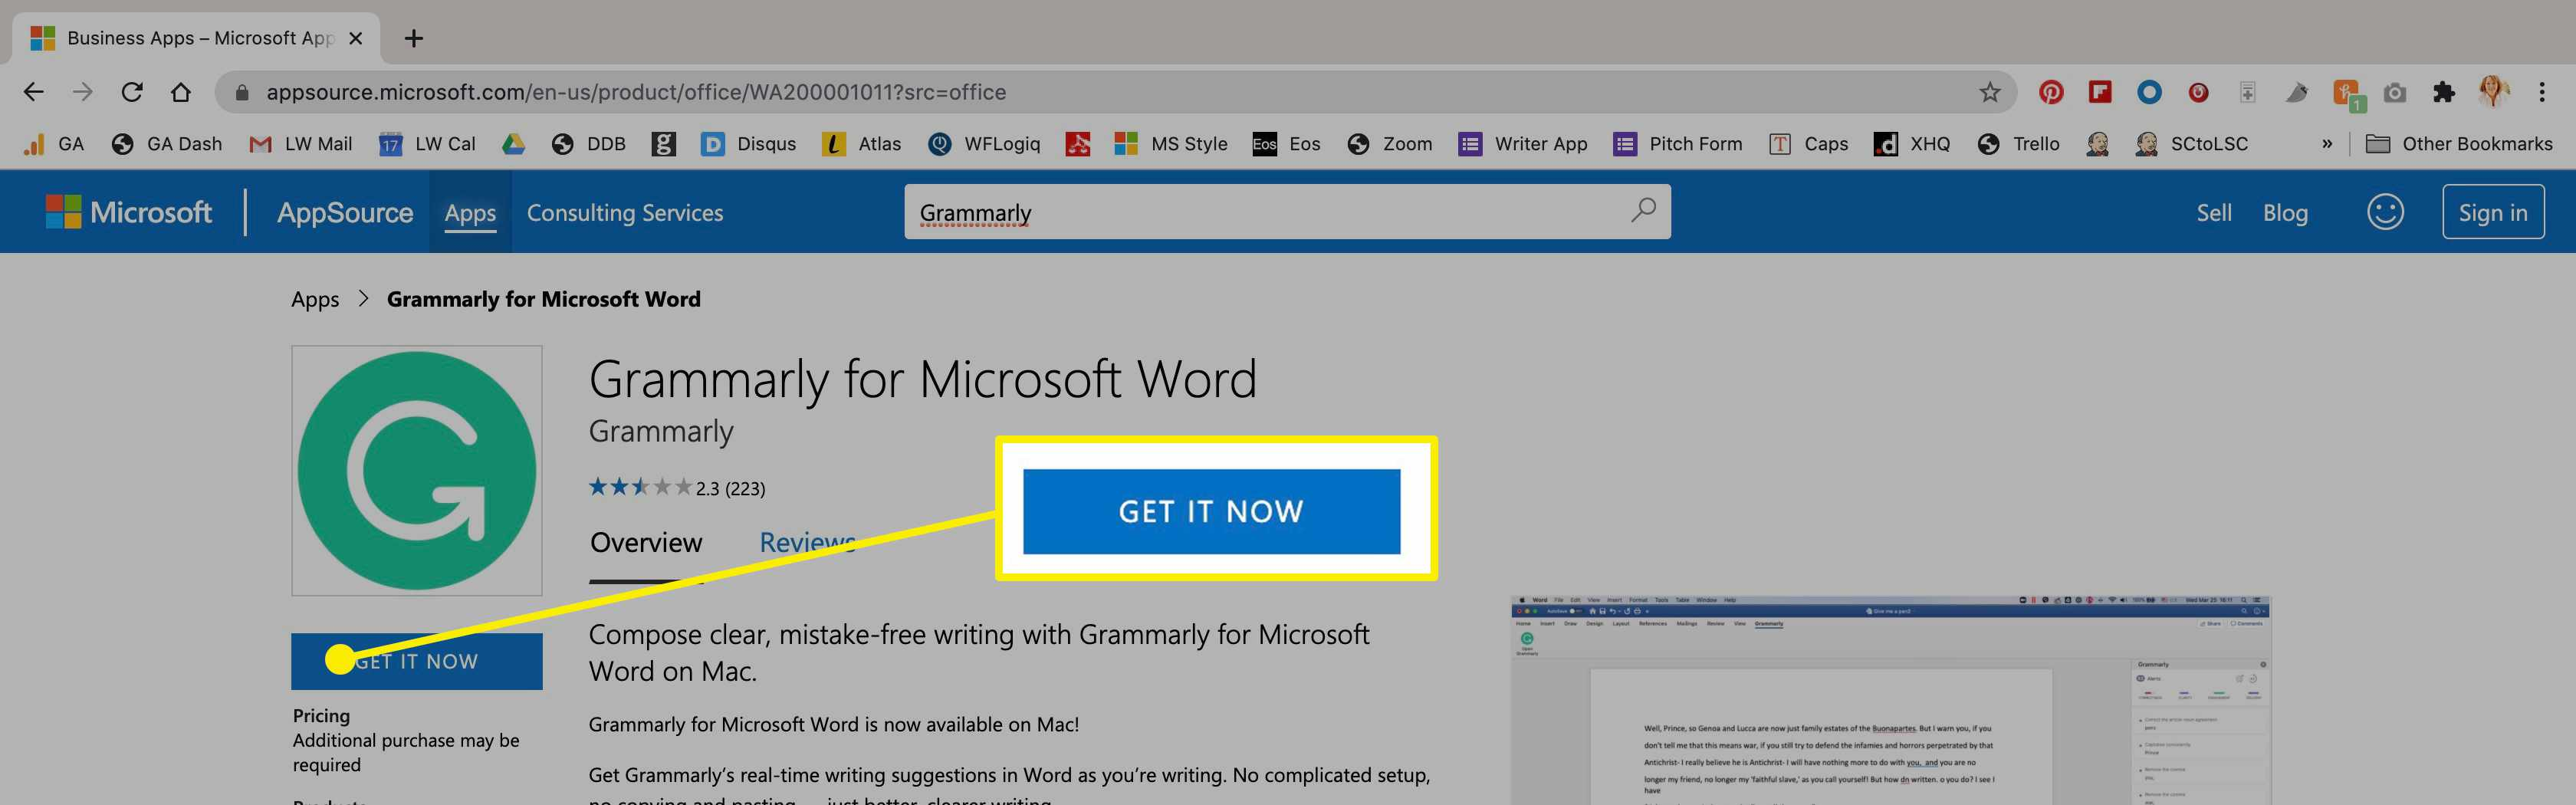 The Grammarly app in the Microsoft Store on Mac.